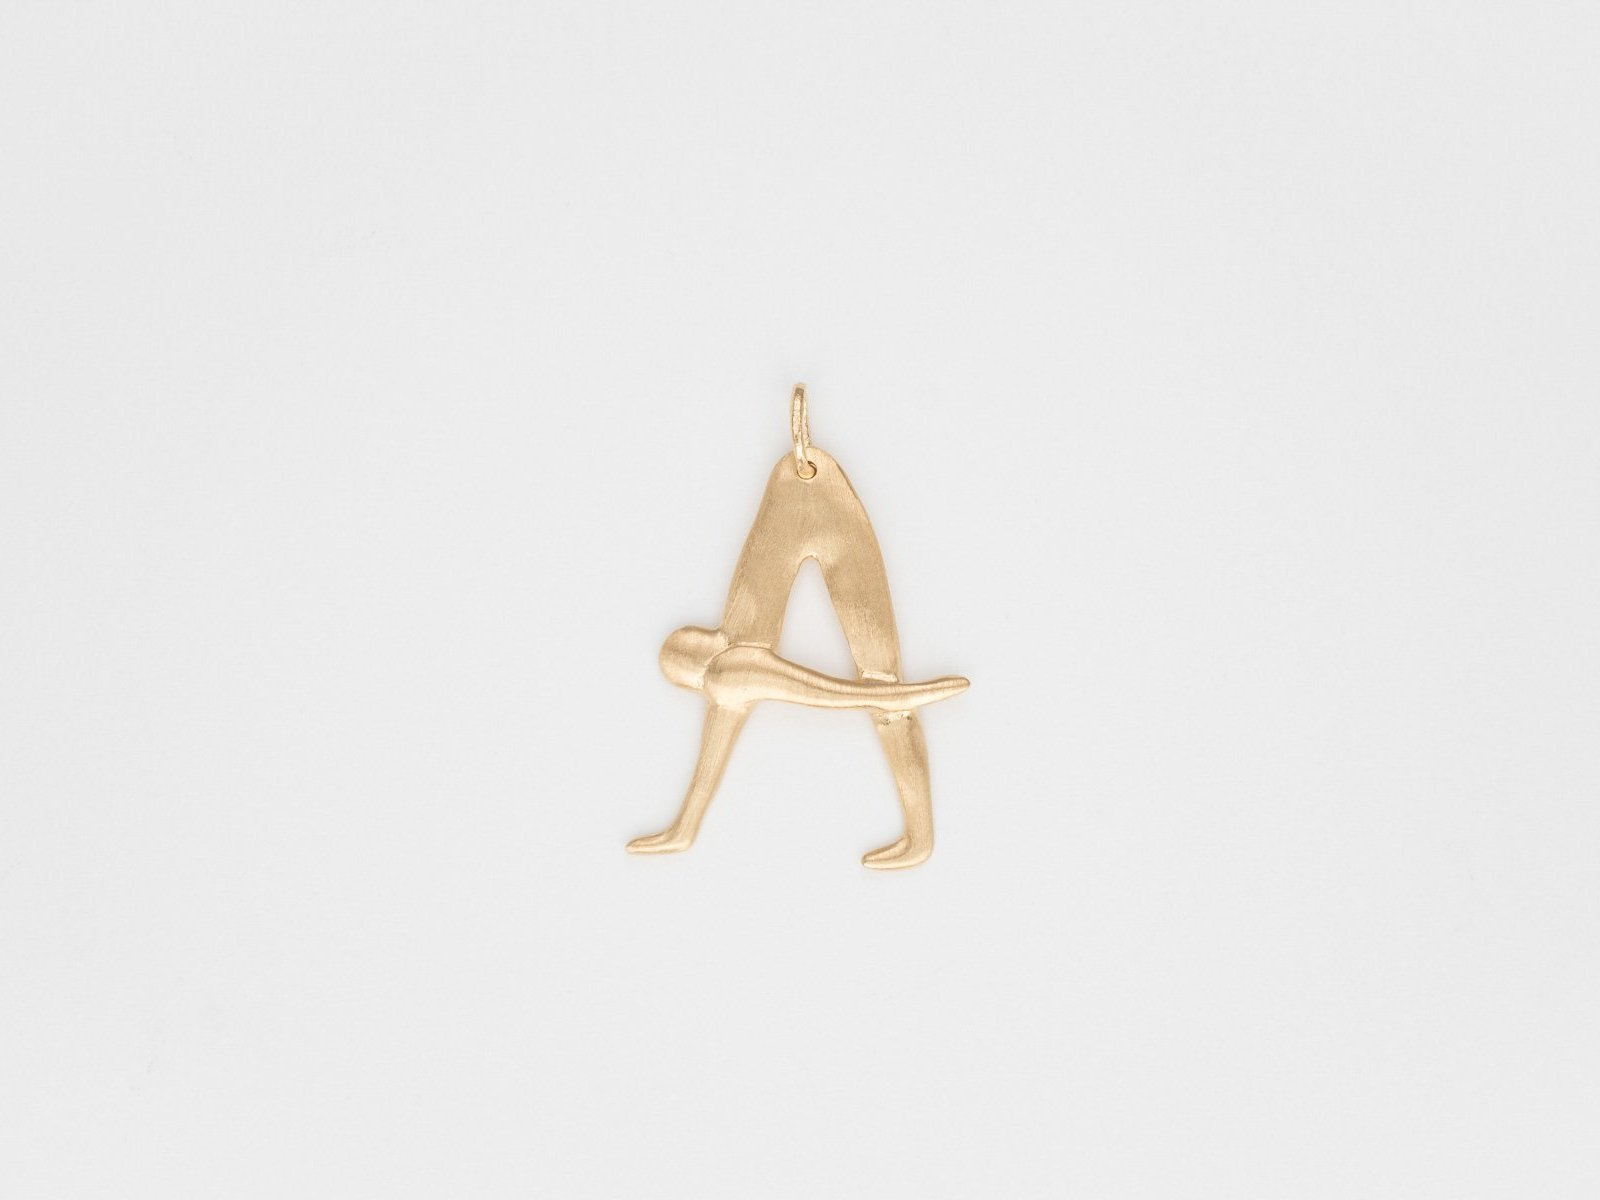 A / Pendant only